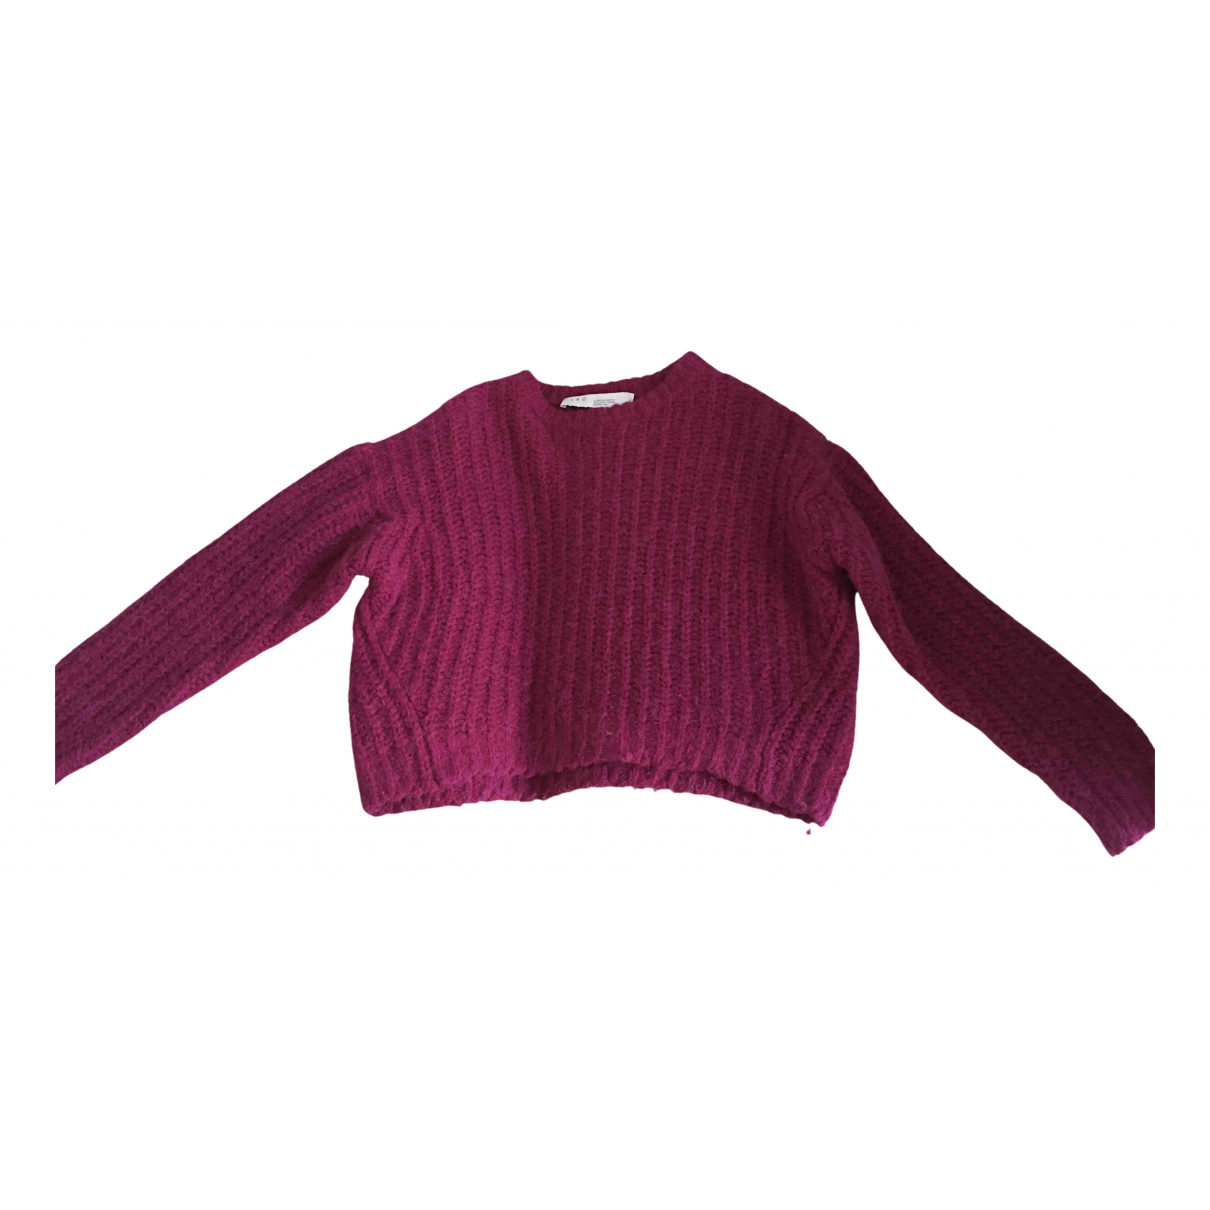 Iro \N Pullover in  Lila Wolle